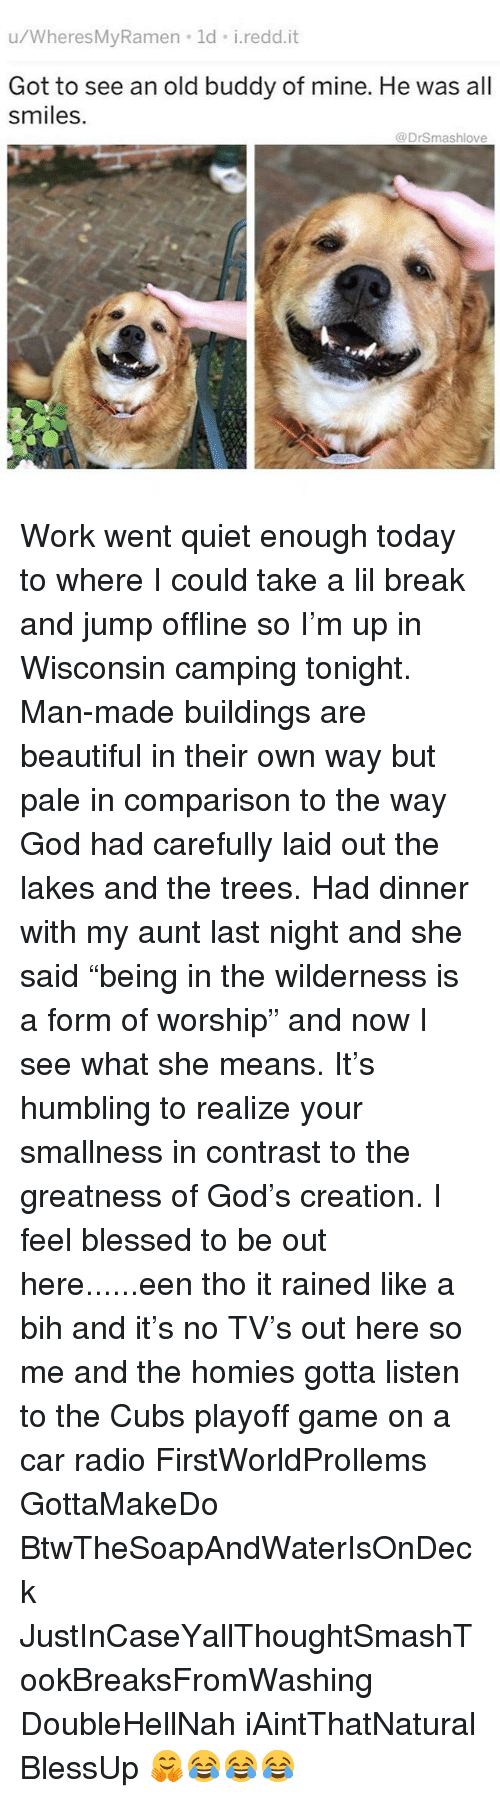 """Beautiful, Blessed, and God: u/WheresMyRamen ld i.redd.it  Got to see an old buddy of mine. He was all  smiles.  @DrSmashlove Work went quiet enough today to where I could take a lil break and jump offline so I'm up in Wisconsin camping tonight. Man-made buildings are beautiful in their own way but pale in comparison to the way God had carefully laid out the lakes and the trees. Had dinner with my aunt last night and she said """"being in the wilderness is a form of worship"""" and now I see what she means. It's humbling to realize your smallness in contrast to the greatness of God's creation. I feel blessed to be out here......een tho it rained like a bih and it's no TV's out here so me and the homies gotta listen to the Cubs playoff game on a car radio FirstWorldProllems GottaMakeDo BtwTheSoapAndWaterIsOnDeck JustInCaseYallThoughtSmashTookBreaksFromWashing DoubleHellNah iAintThatNatural BlessUp 🤗😂😂😂"""